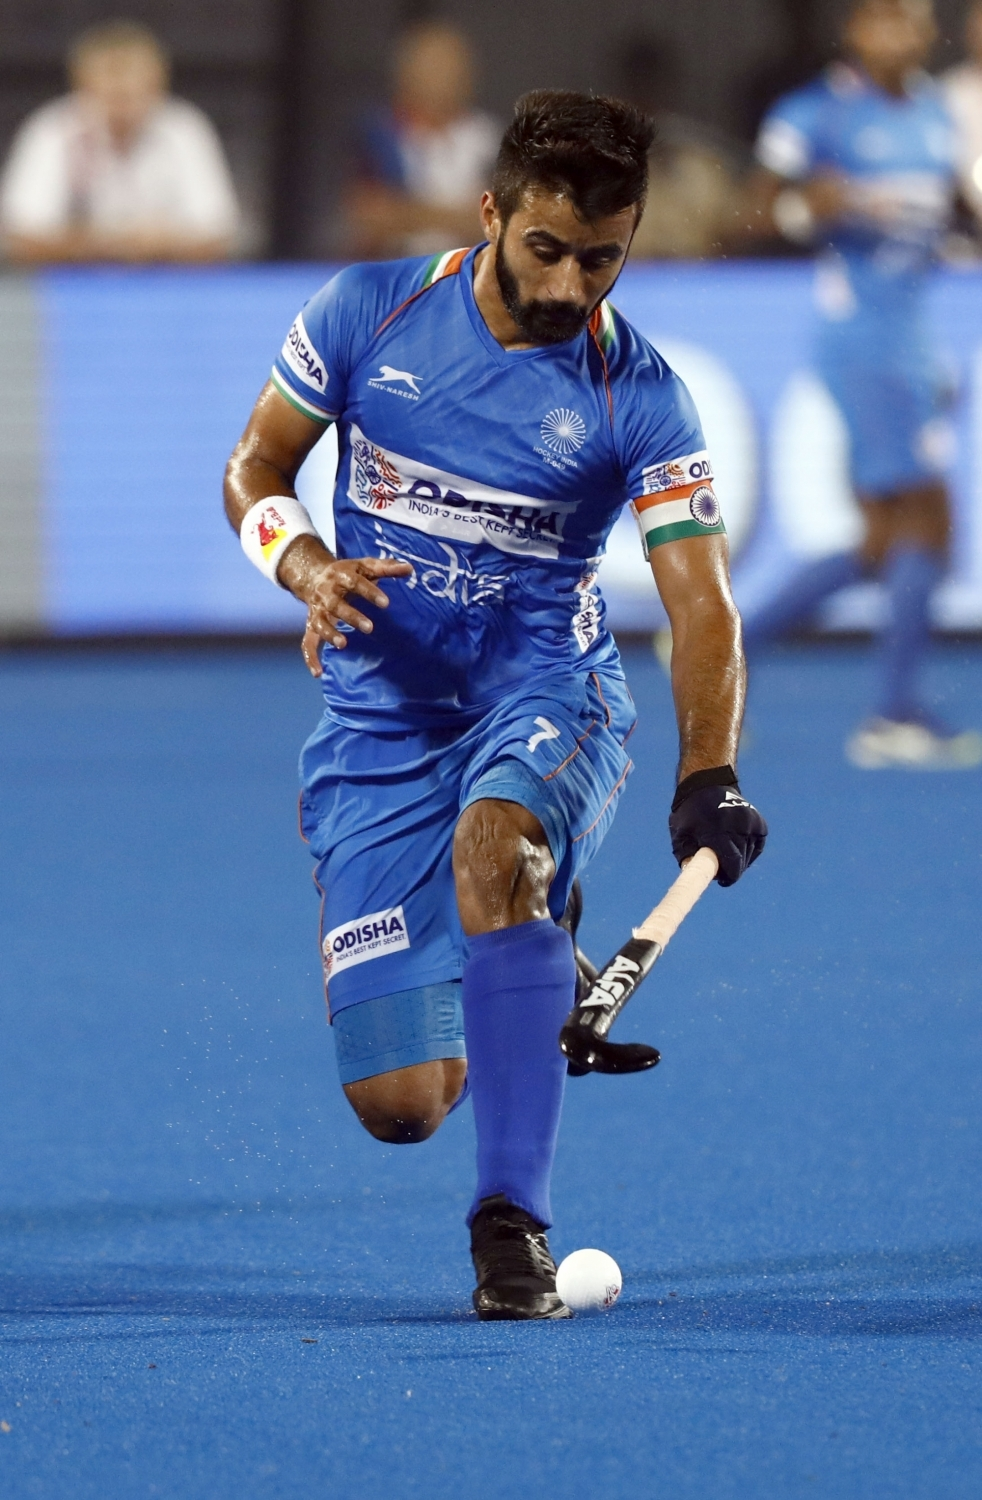 India men's team announced for Argentina Pro League matches